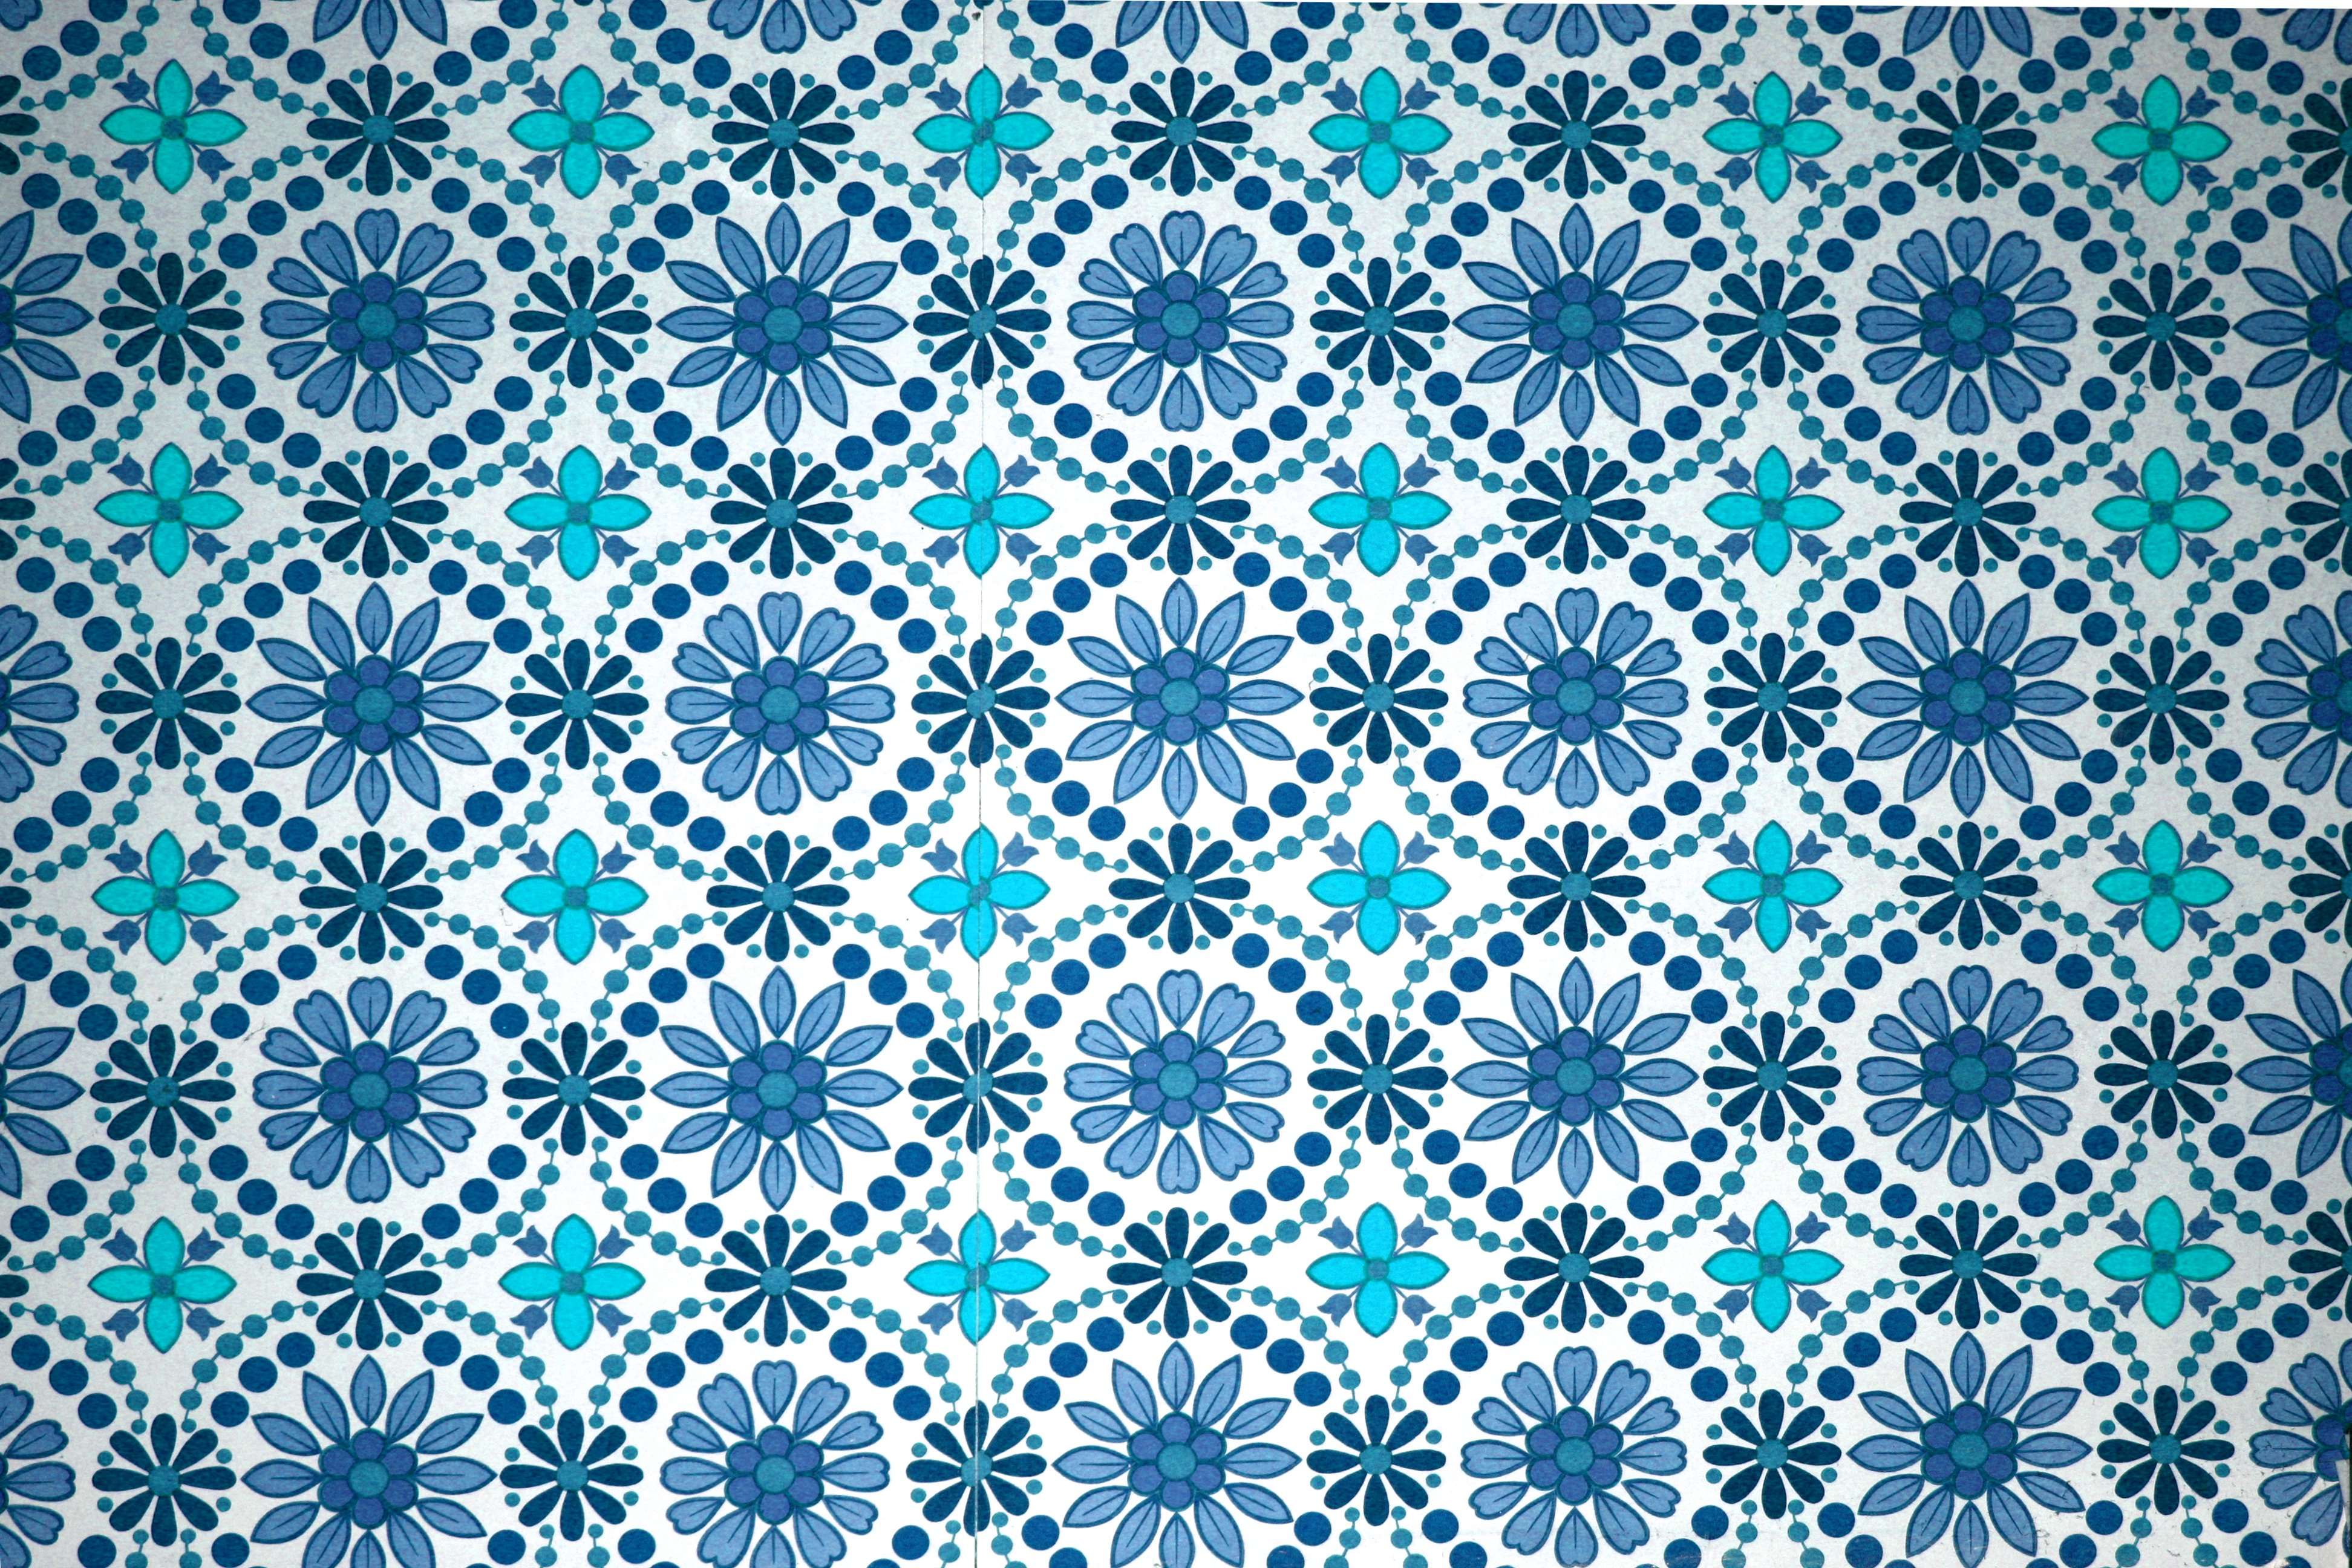 Turquoise Flowers Wallpaper Texture Picture | Free Photograph | Photos ...